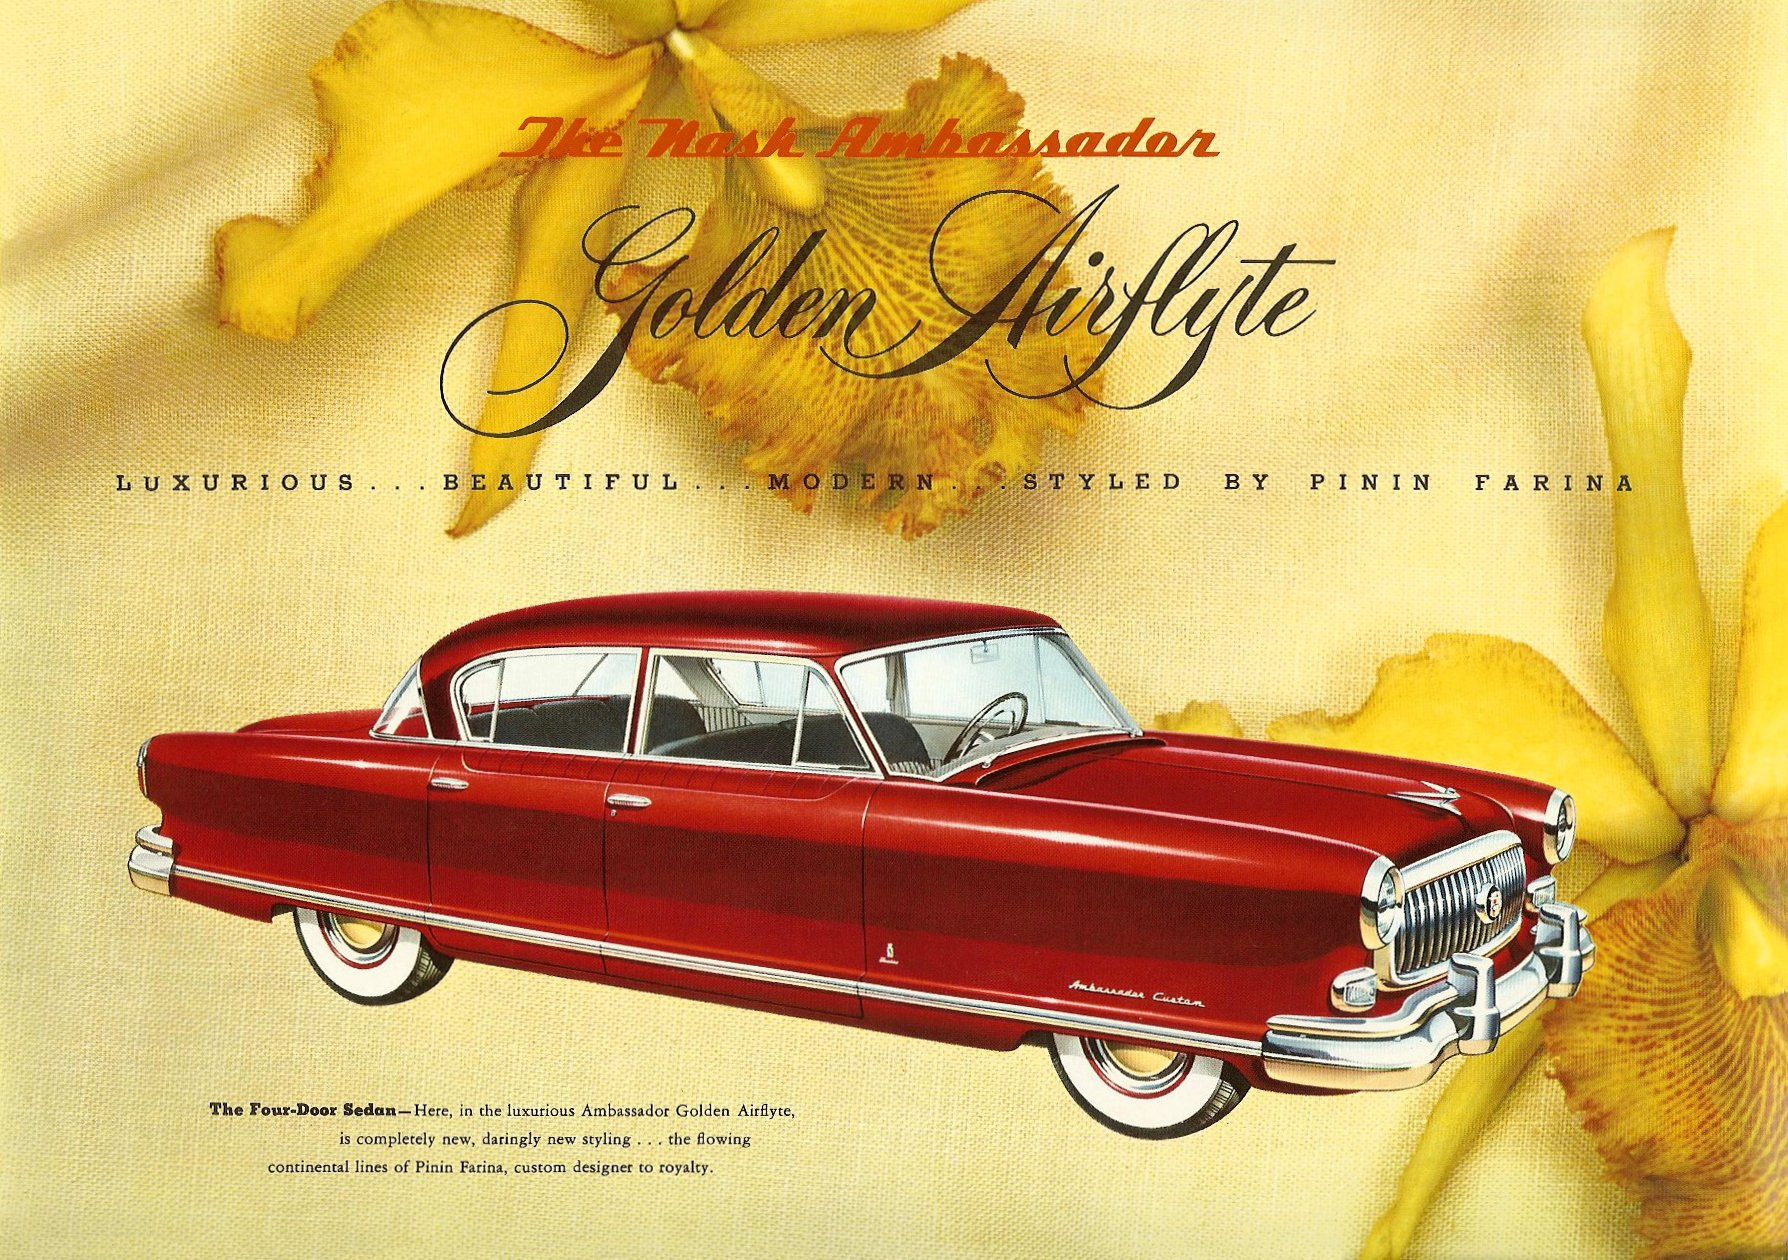 1952 The Golden Airflyte 1902-1952 Golden Anniversary By NASH Sales Catalog NSP-52-950-250M-3-52 Page 8, 12″x9″